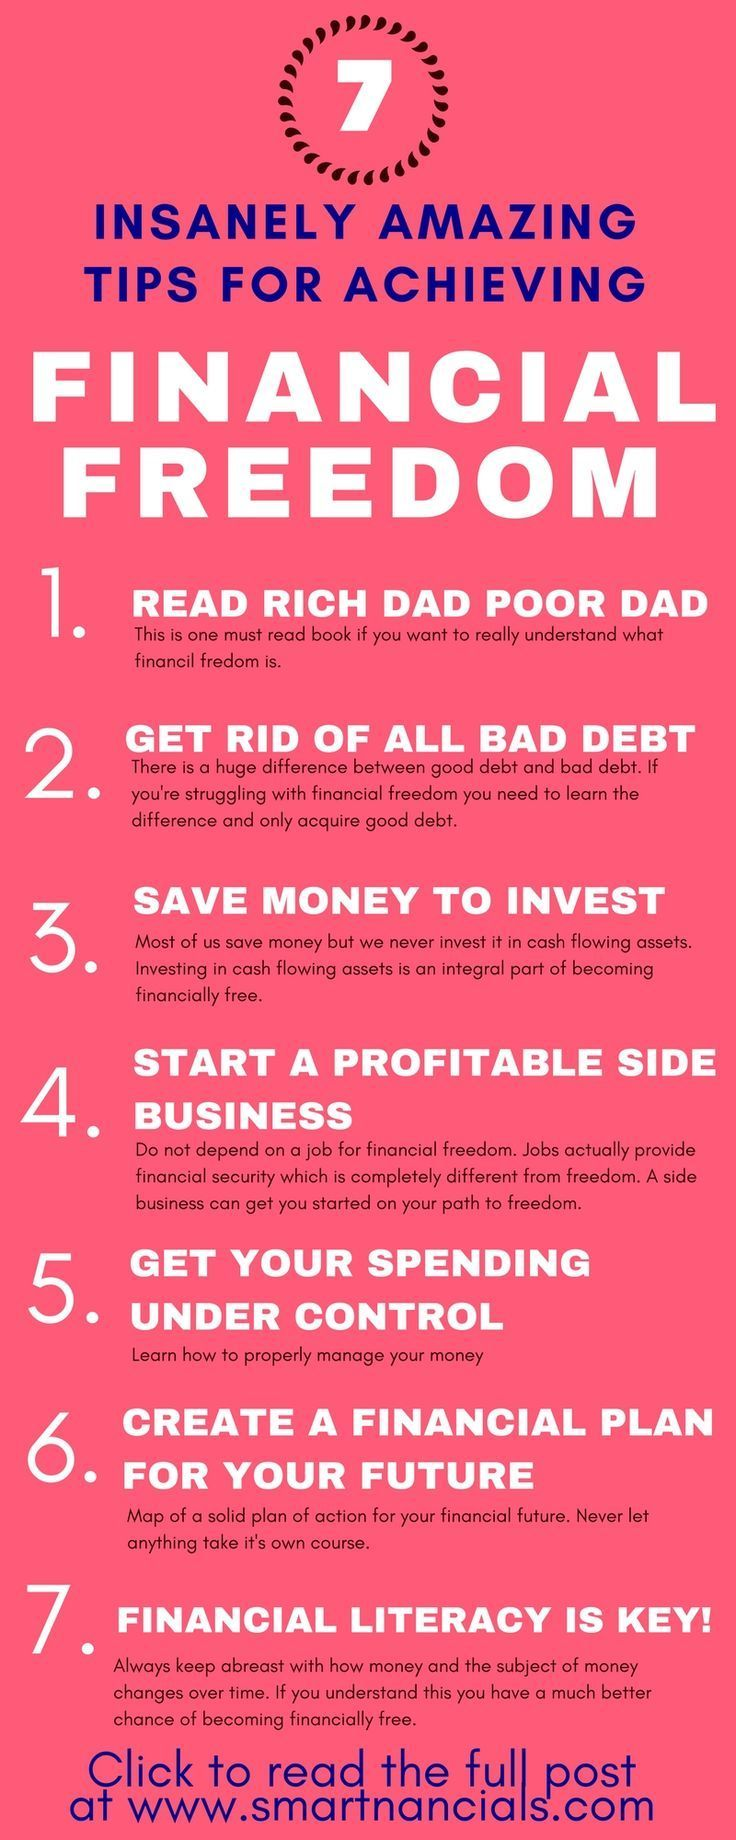 7 Insanely Amazing Tips For Achieving Financial Freedom